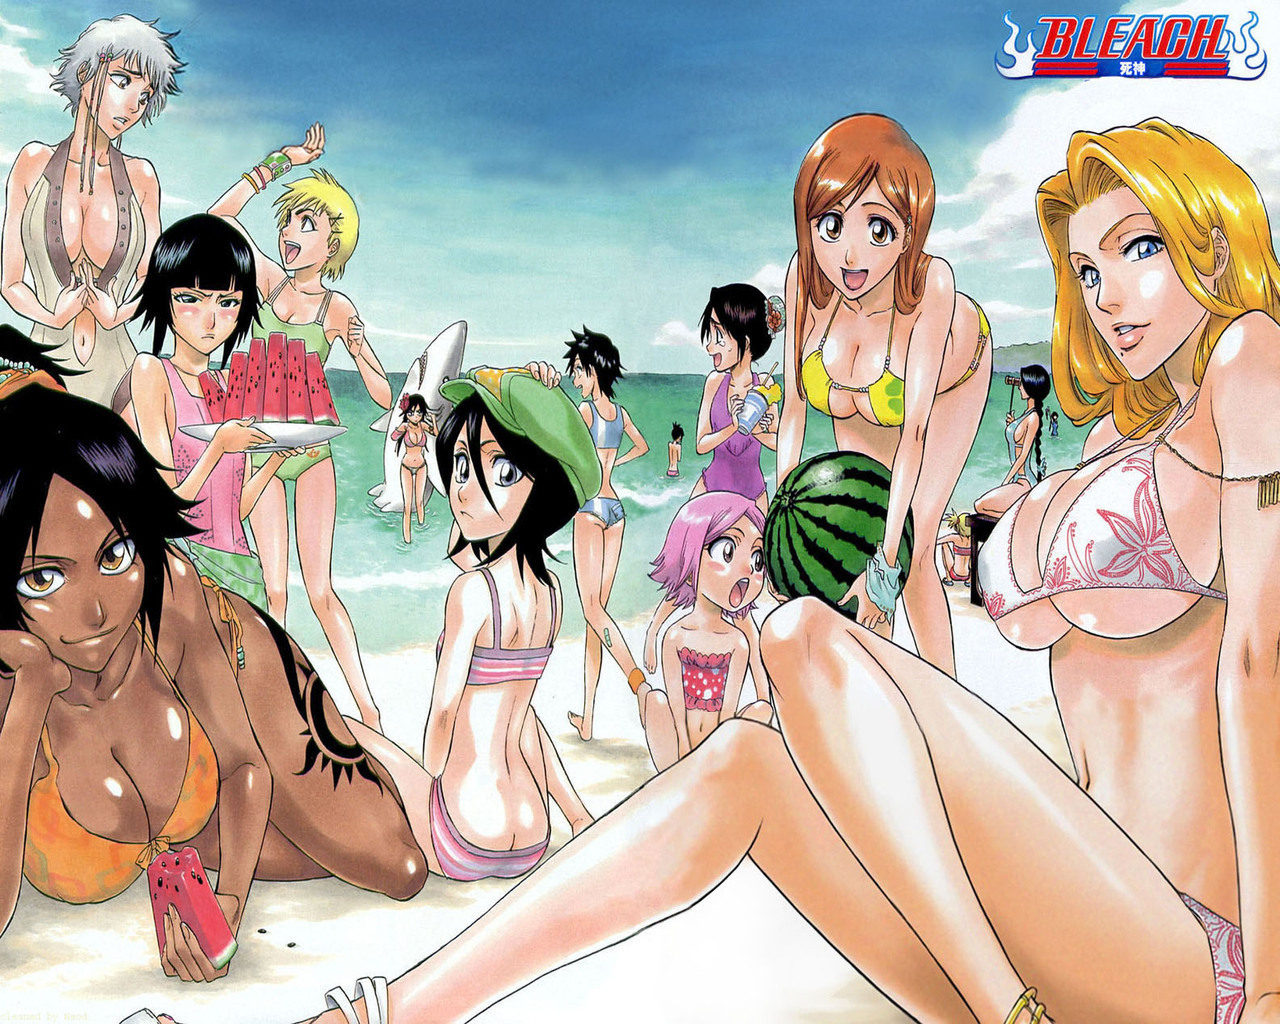 Bleach Girls at the spiaggia